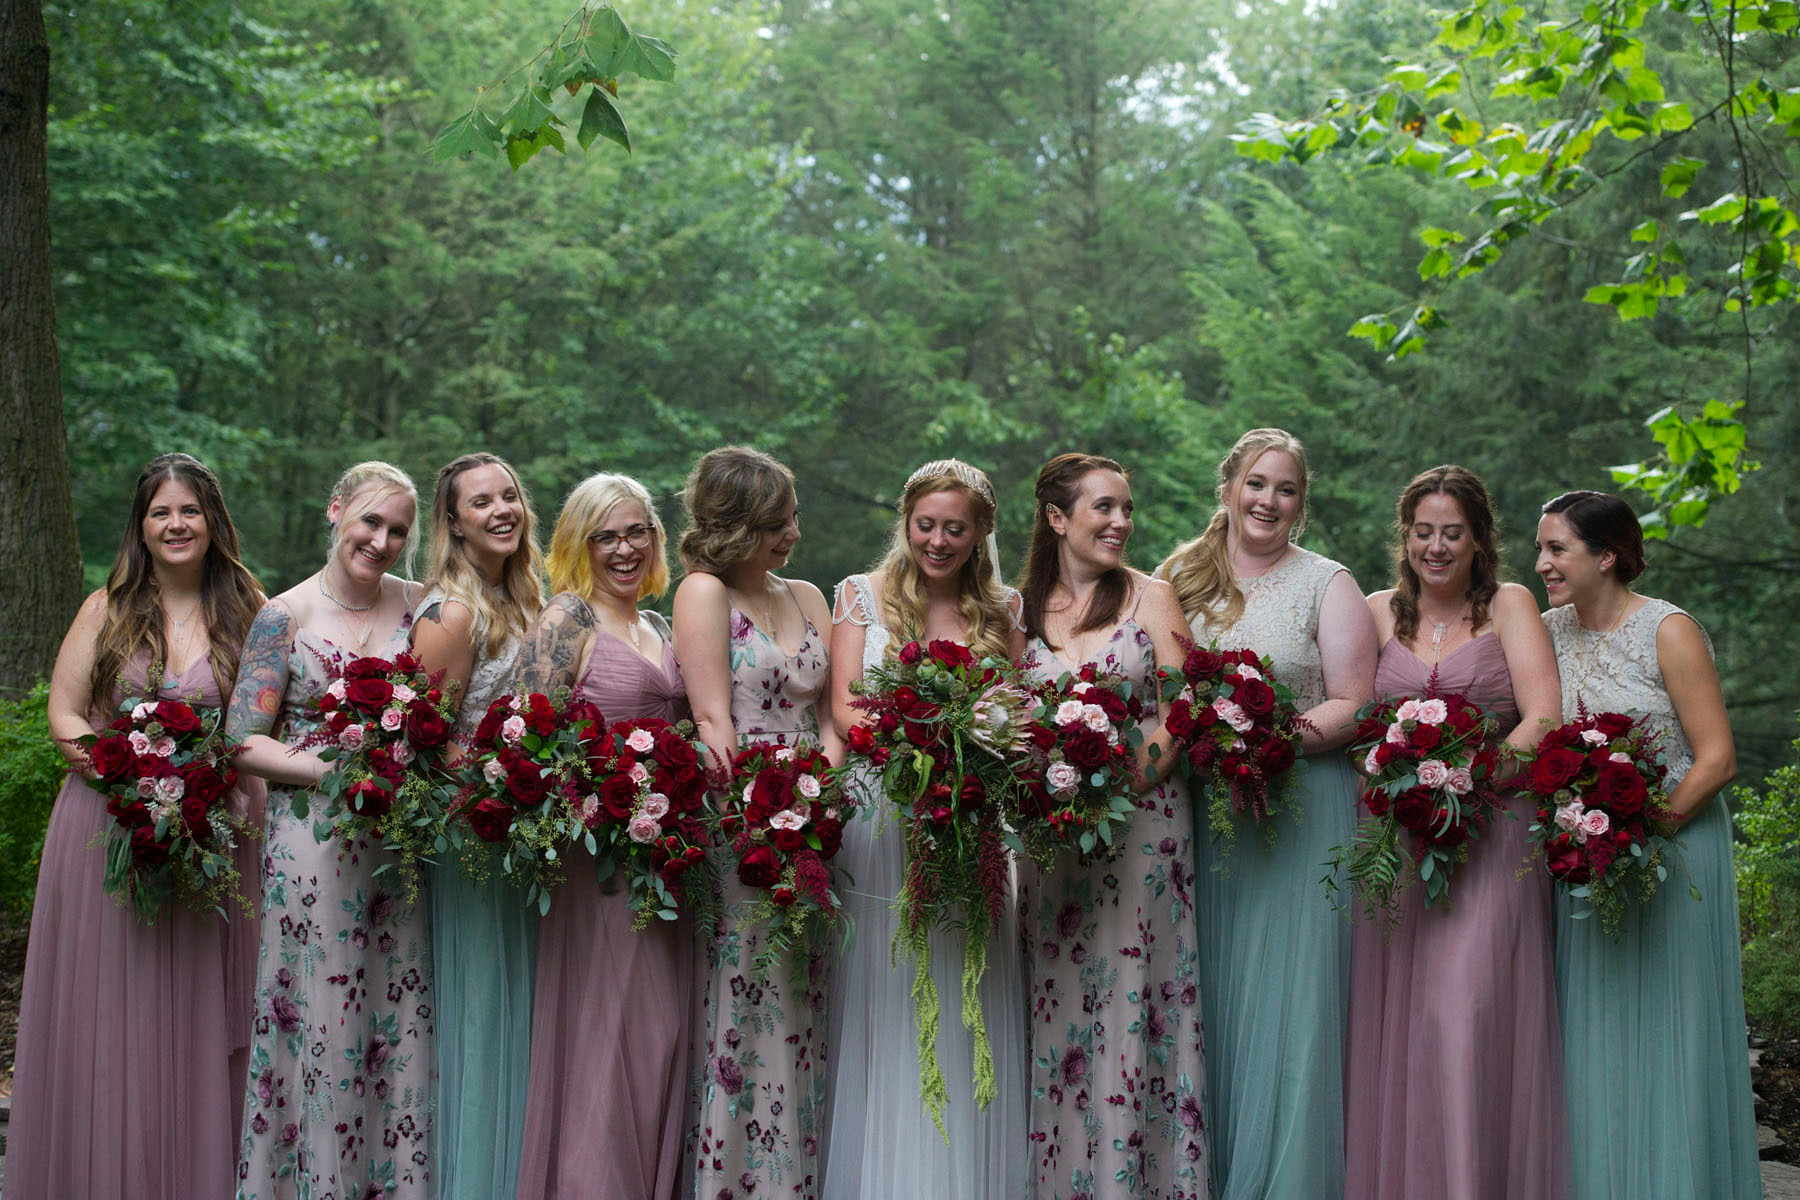 Bucks_County_wedding_photographer_Stroudsmoor_country_inn_wedding_Philadelphia_wedding_photographer_07_mismatched_bridesmaid_dresses_floral_bridesmaid_dress_pink_and_green.JPG